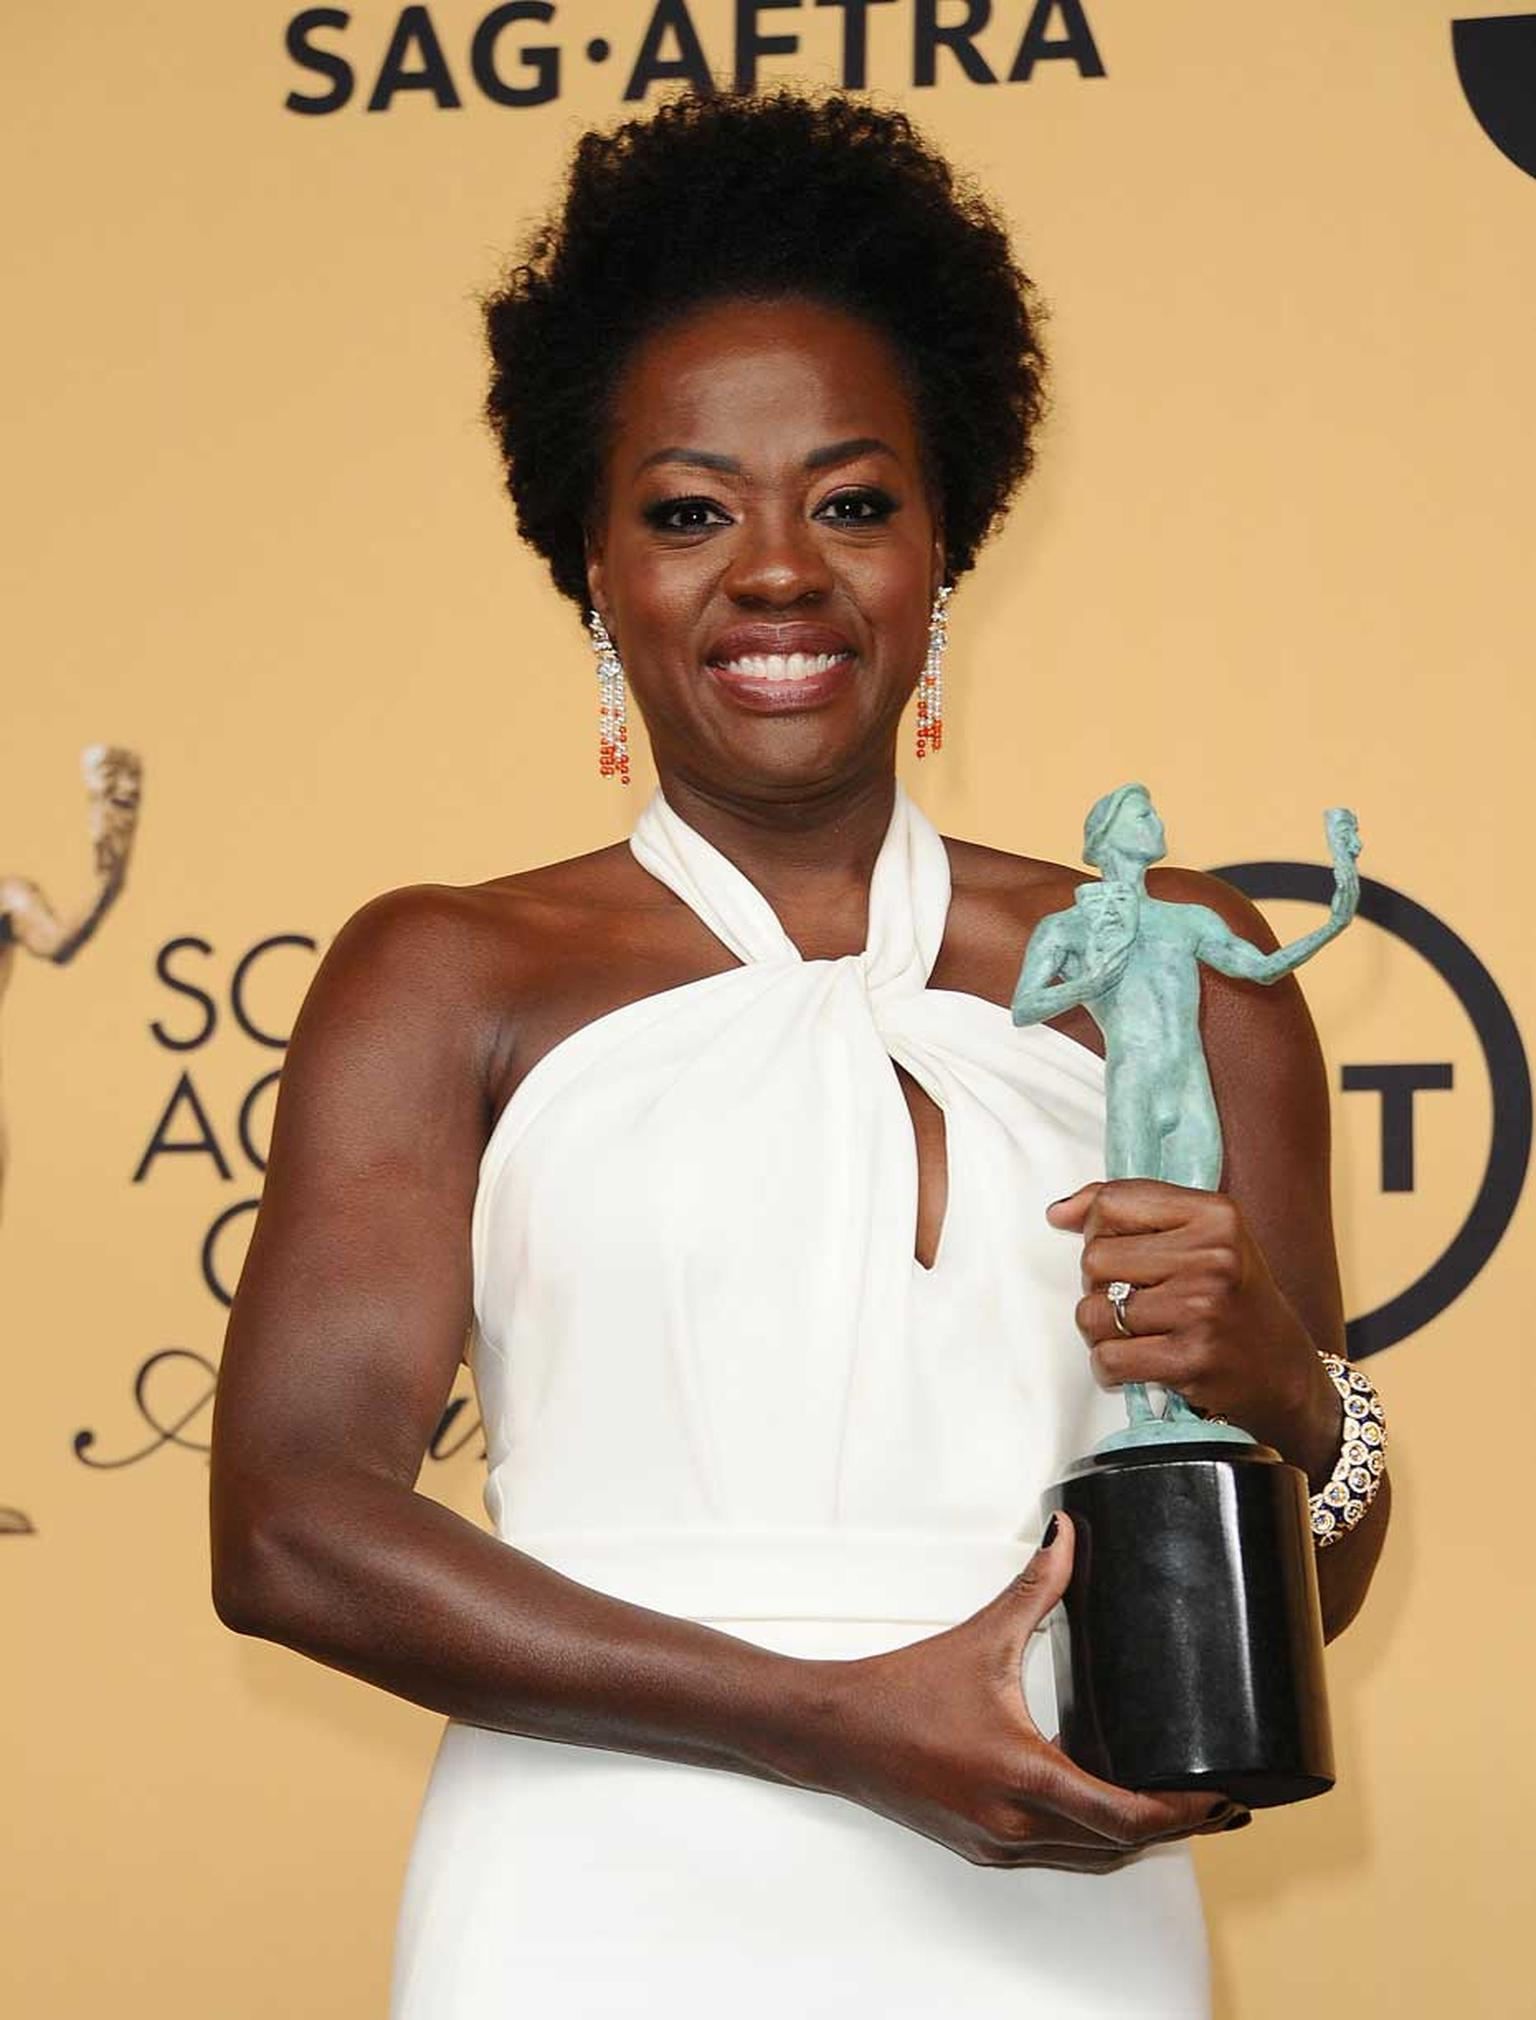 SAG-Awards-2015_Viola-Davis---Van-Cleef-&-Arpels---Photo-by-Jason-LaVeris----FilmMagic-4..jpg